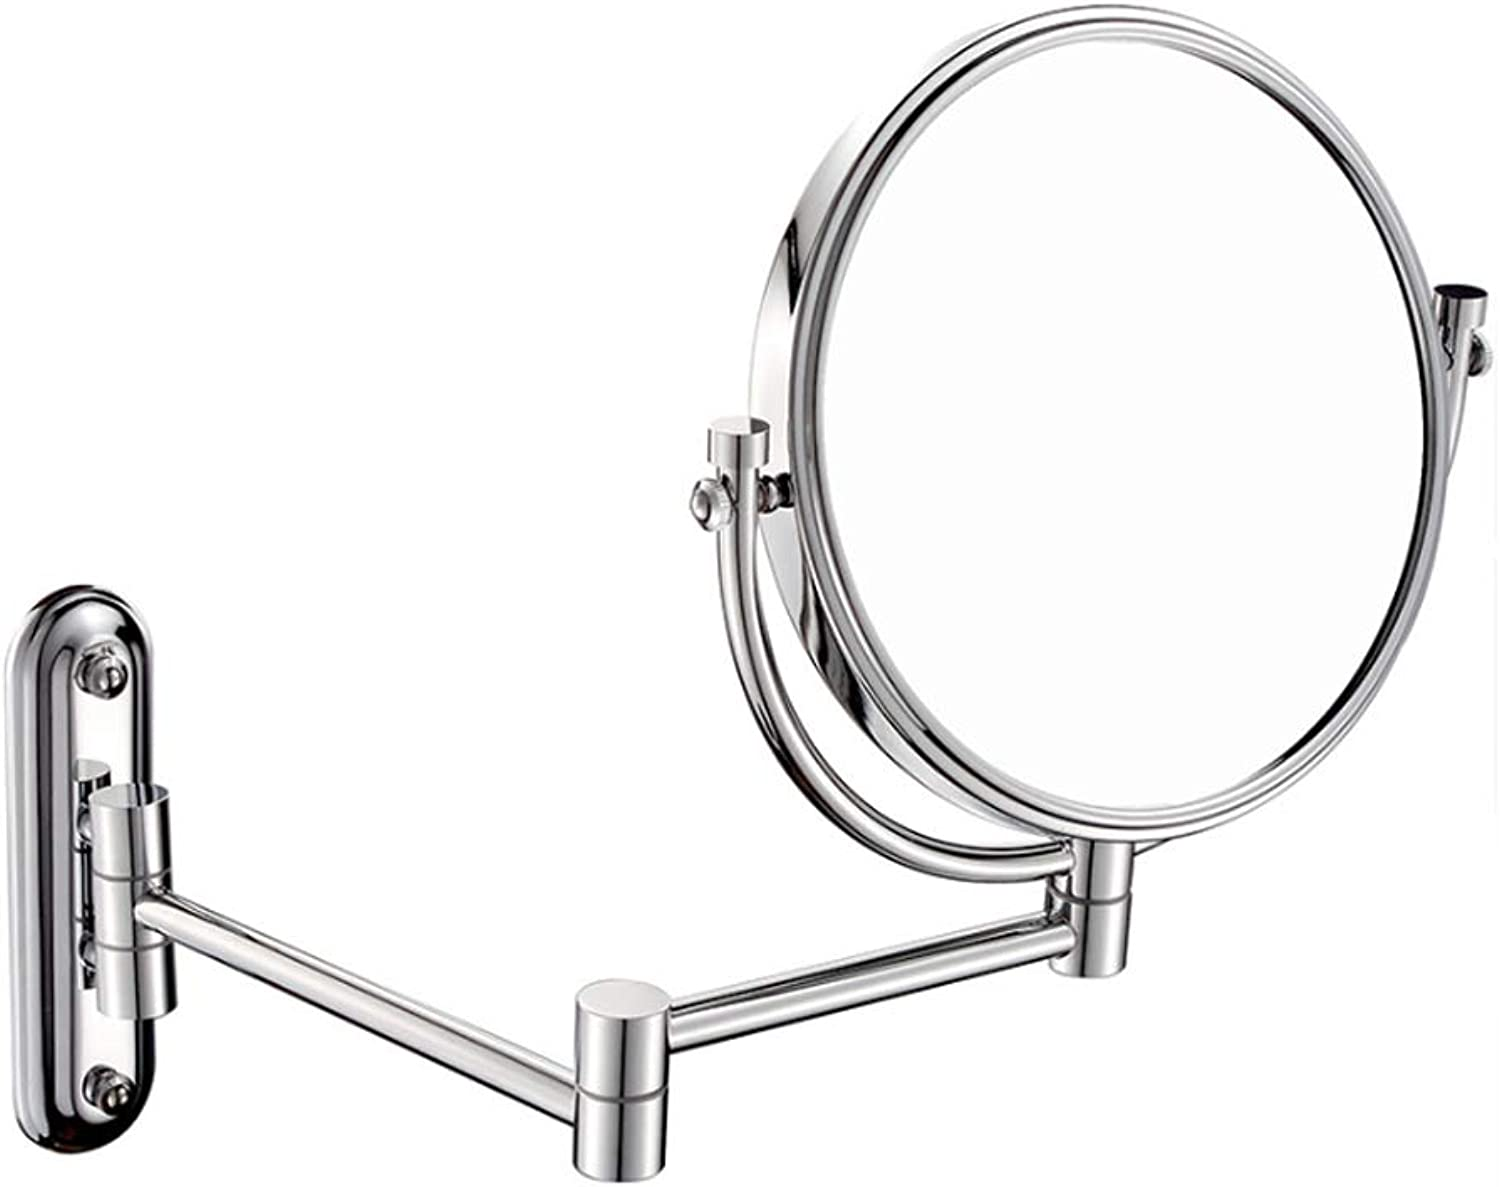 10x   1x Bathroom Magnifying Glass Double-Sided 8 Inch Makeup Mirror 360° redatable Folding Vanity Mirror Chrome Finished,5X